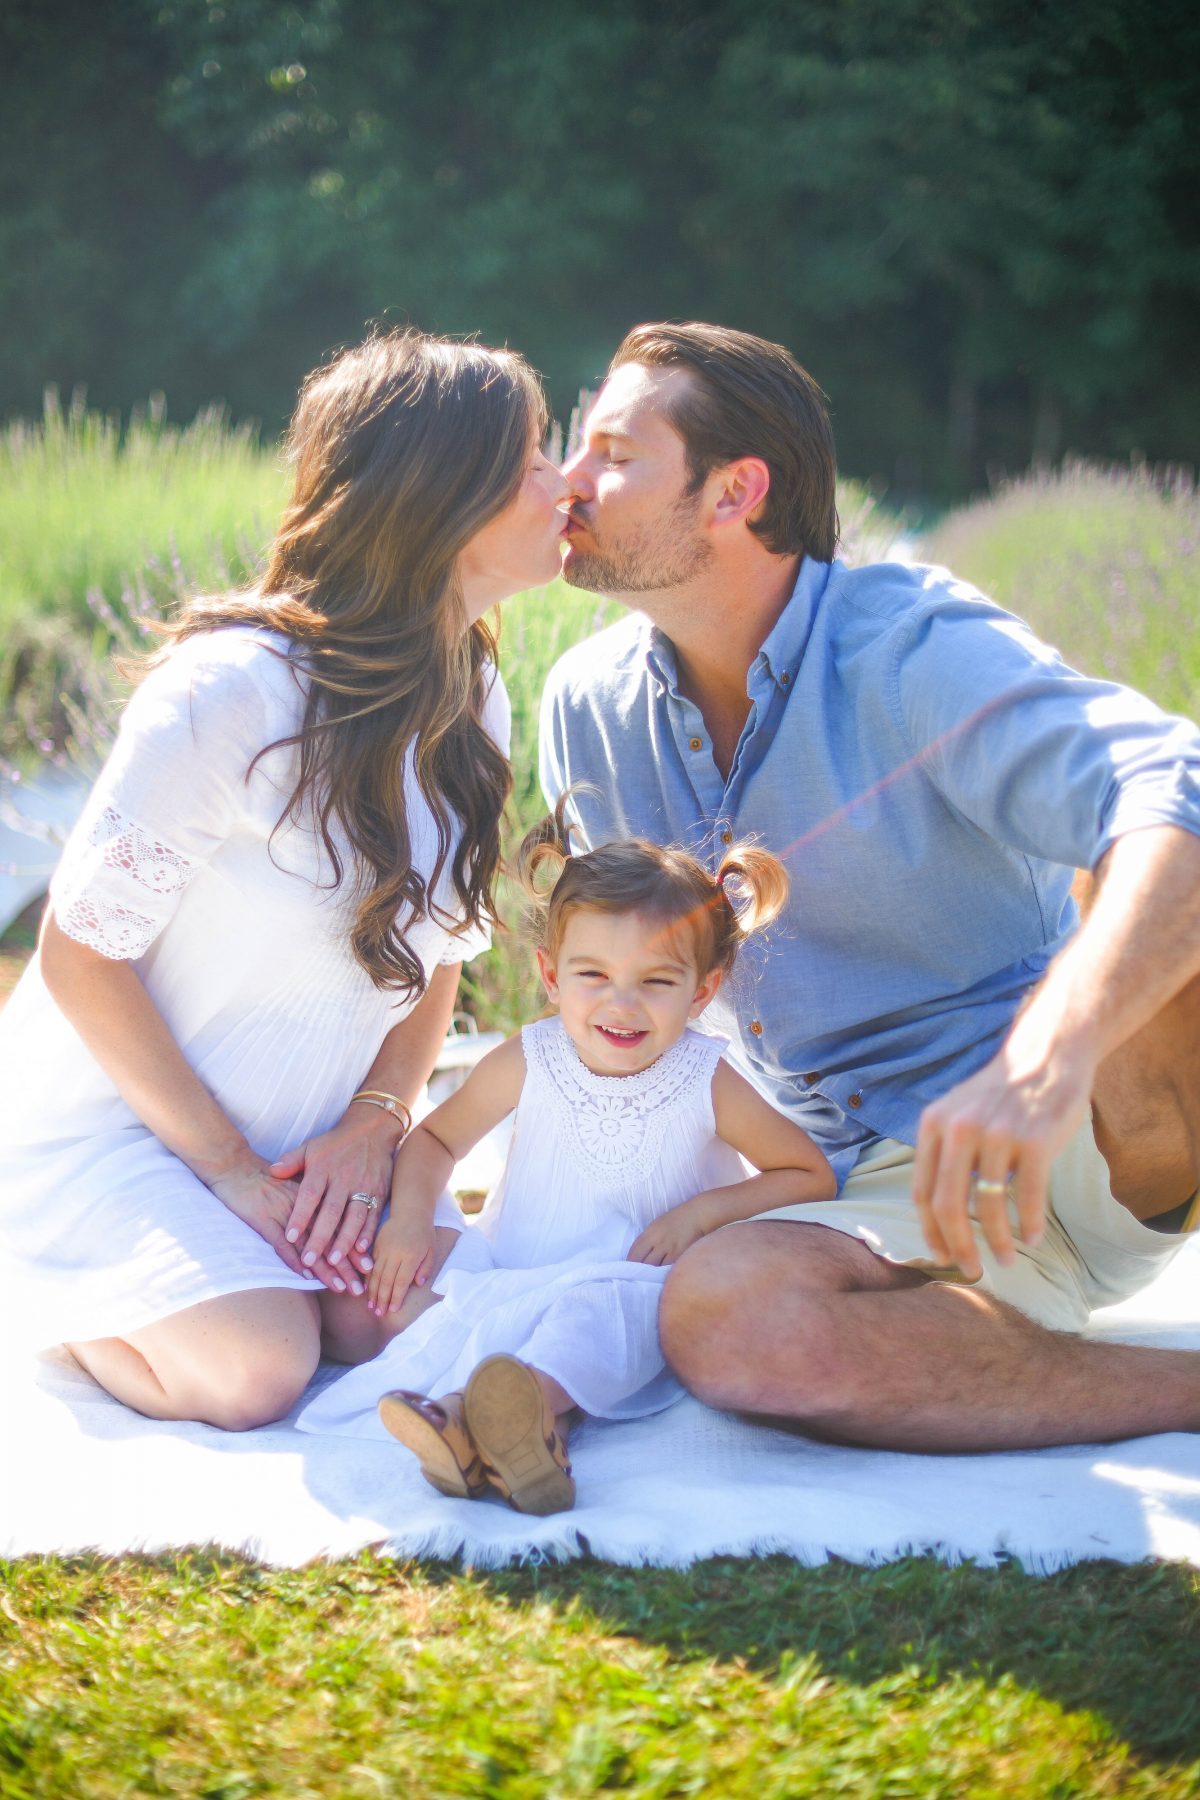 Maternity Photo and Family Photos in White and Blue at Lavender Farm